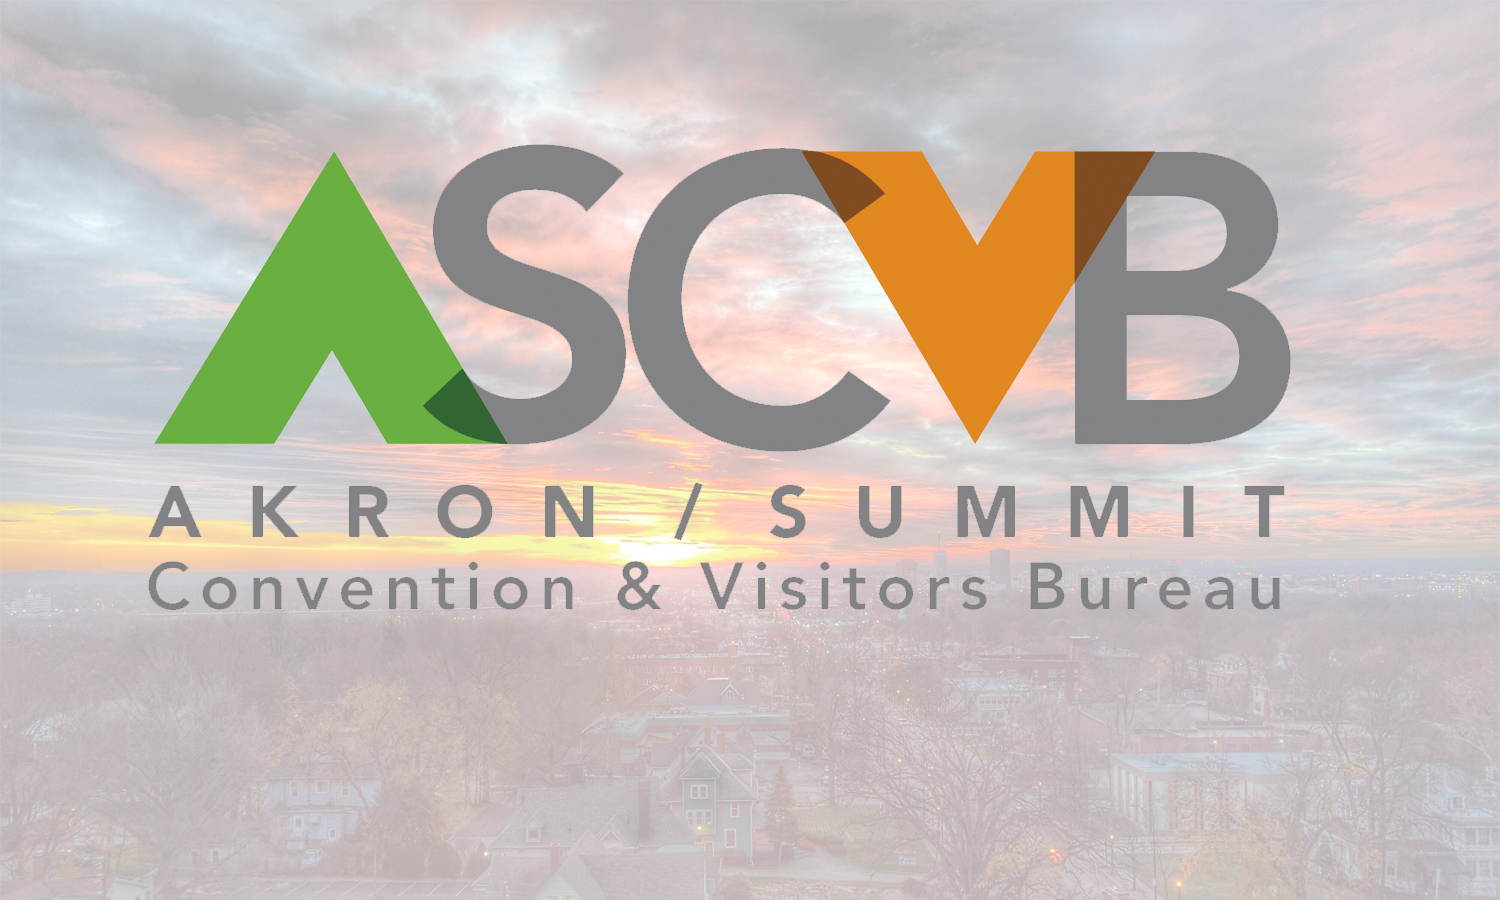 Akron/Summit CVB - Our Main Web Site!